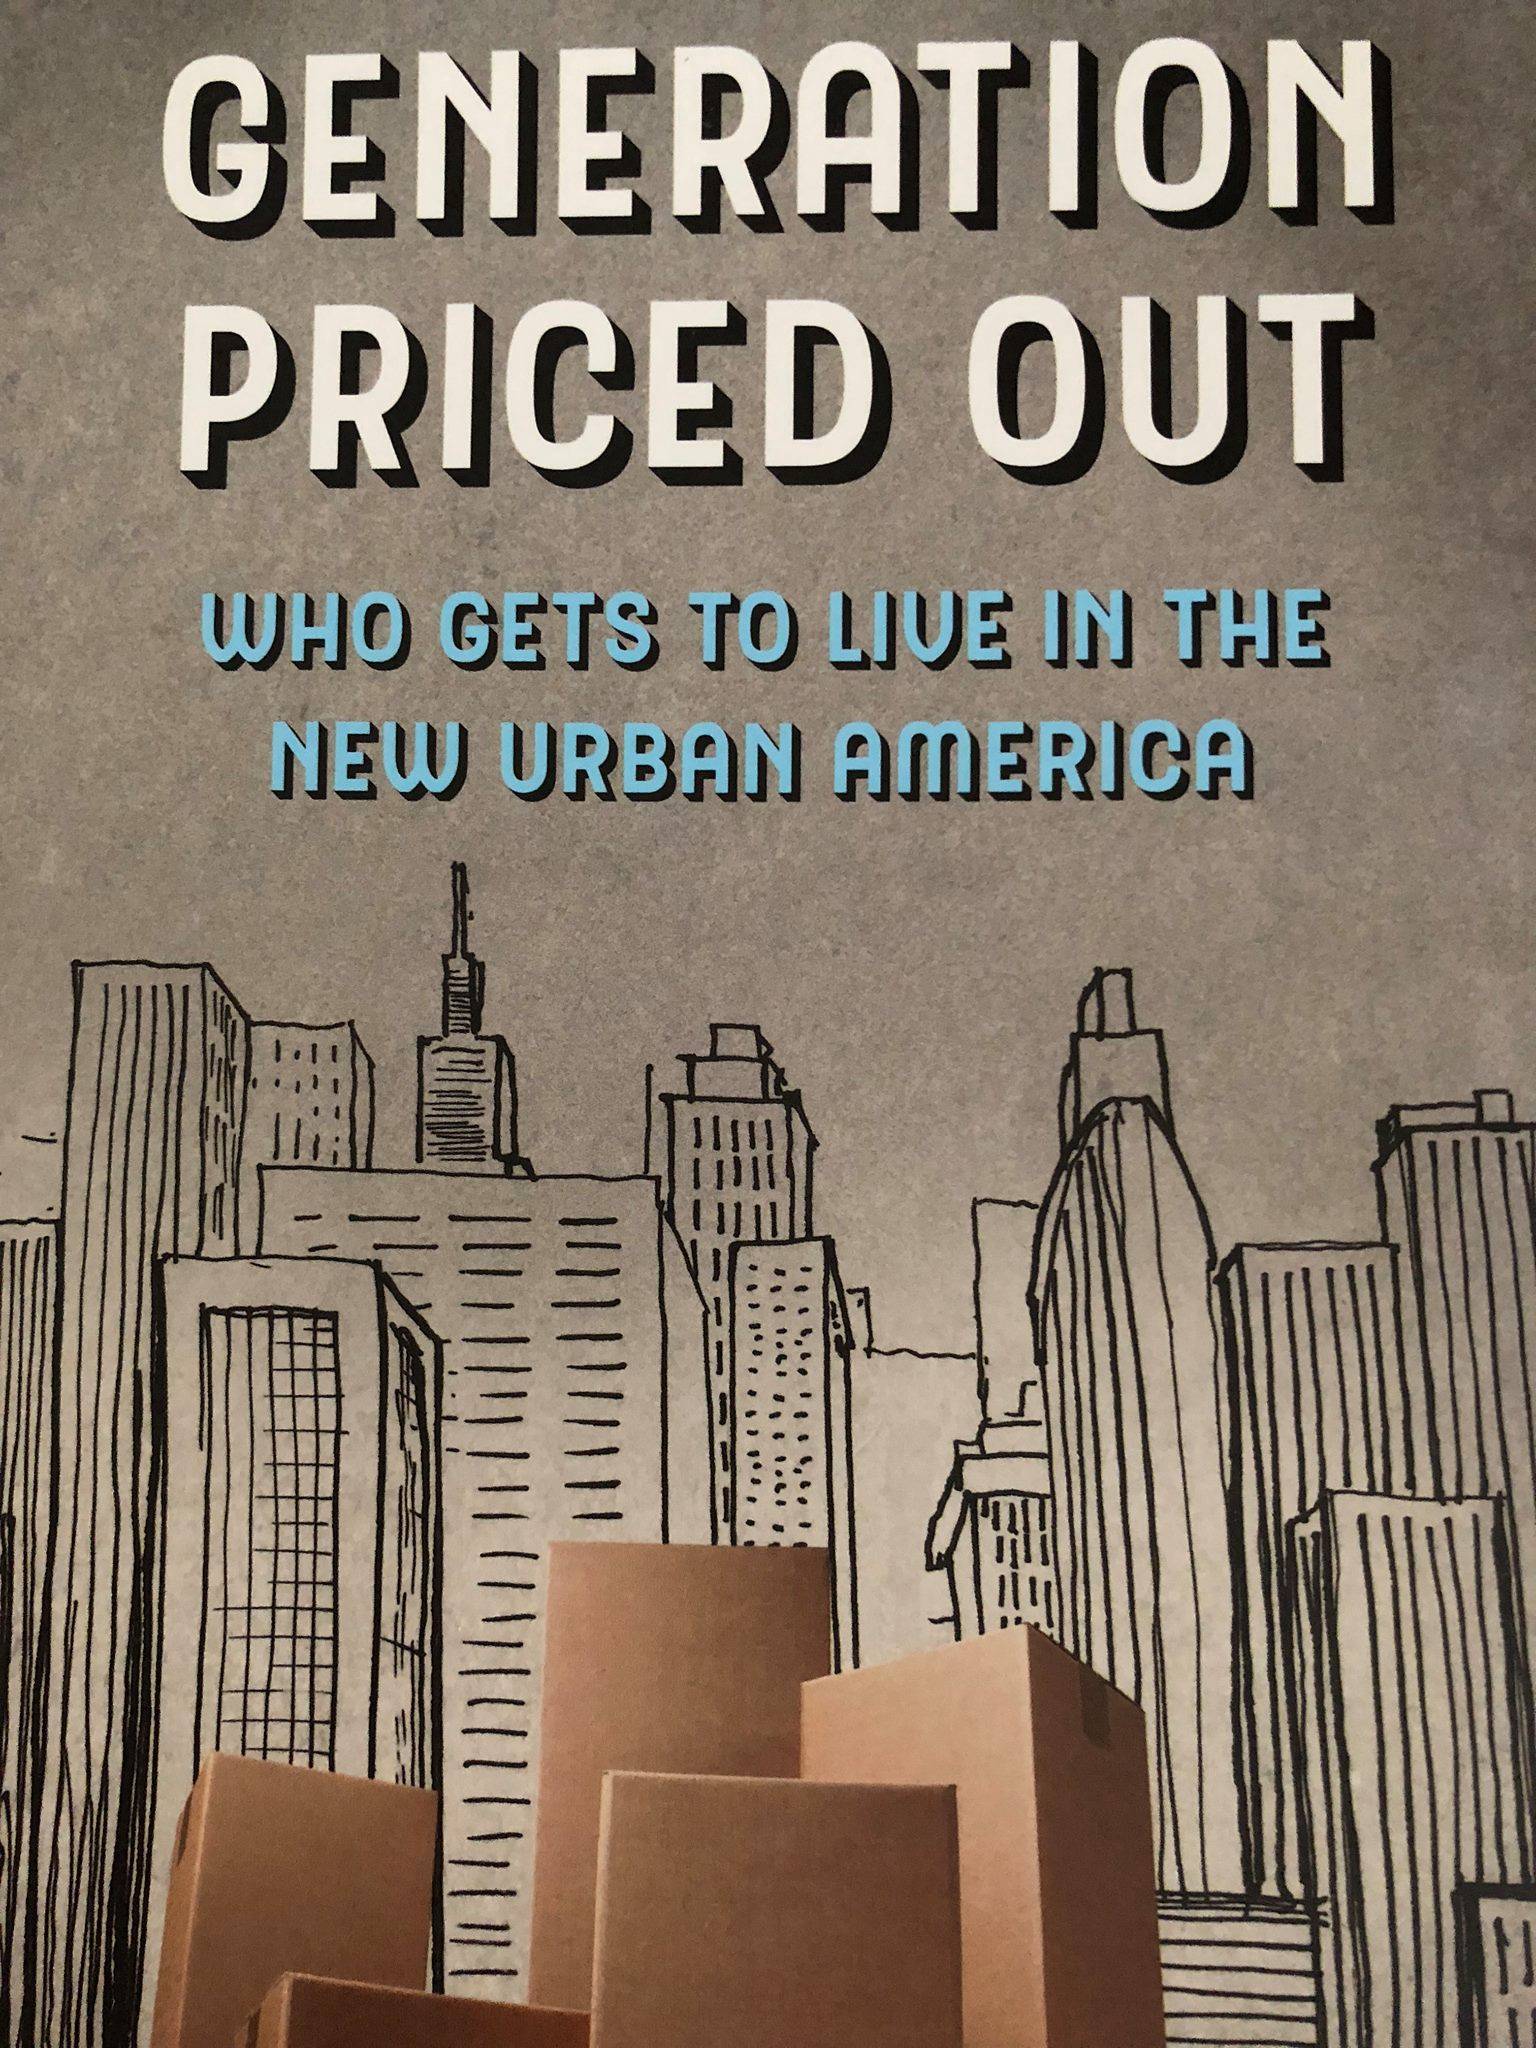 Priced Out Permanently: Are American cities destined to